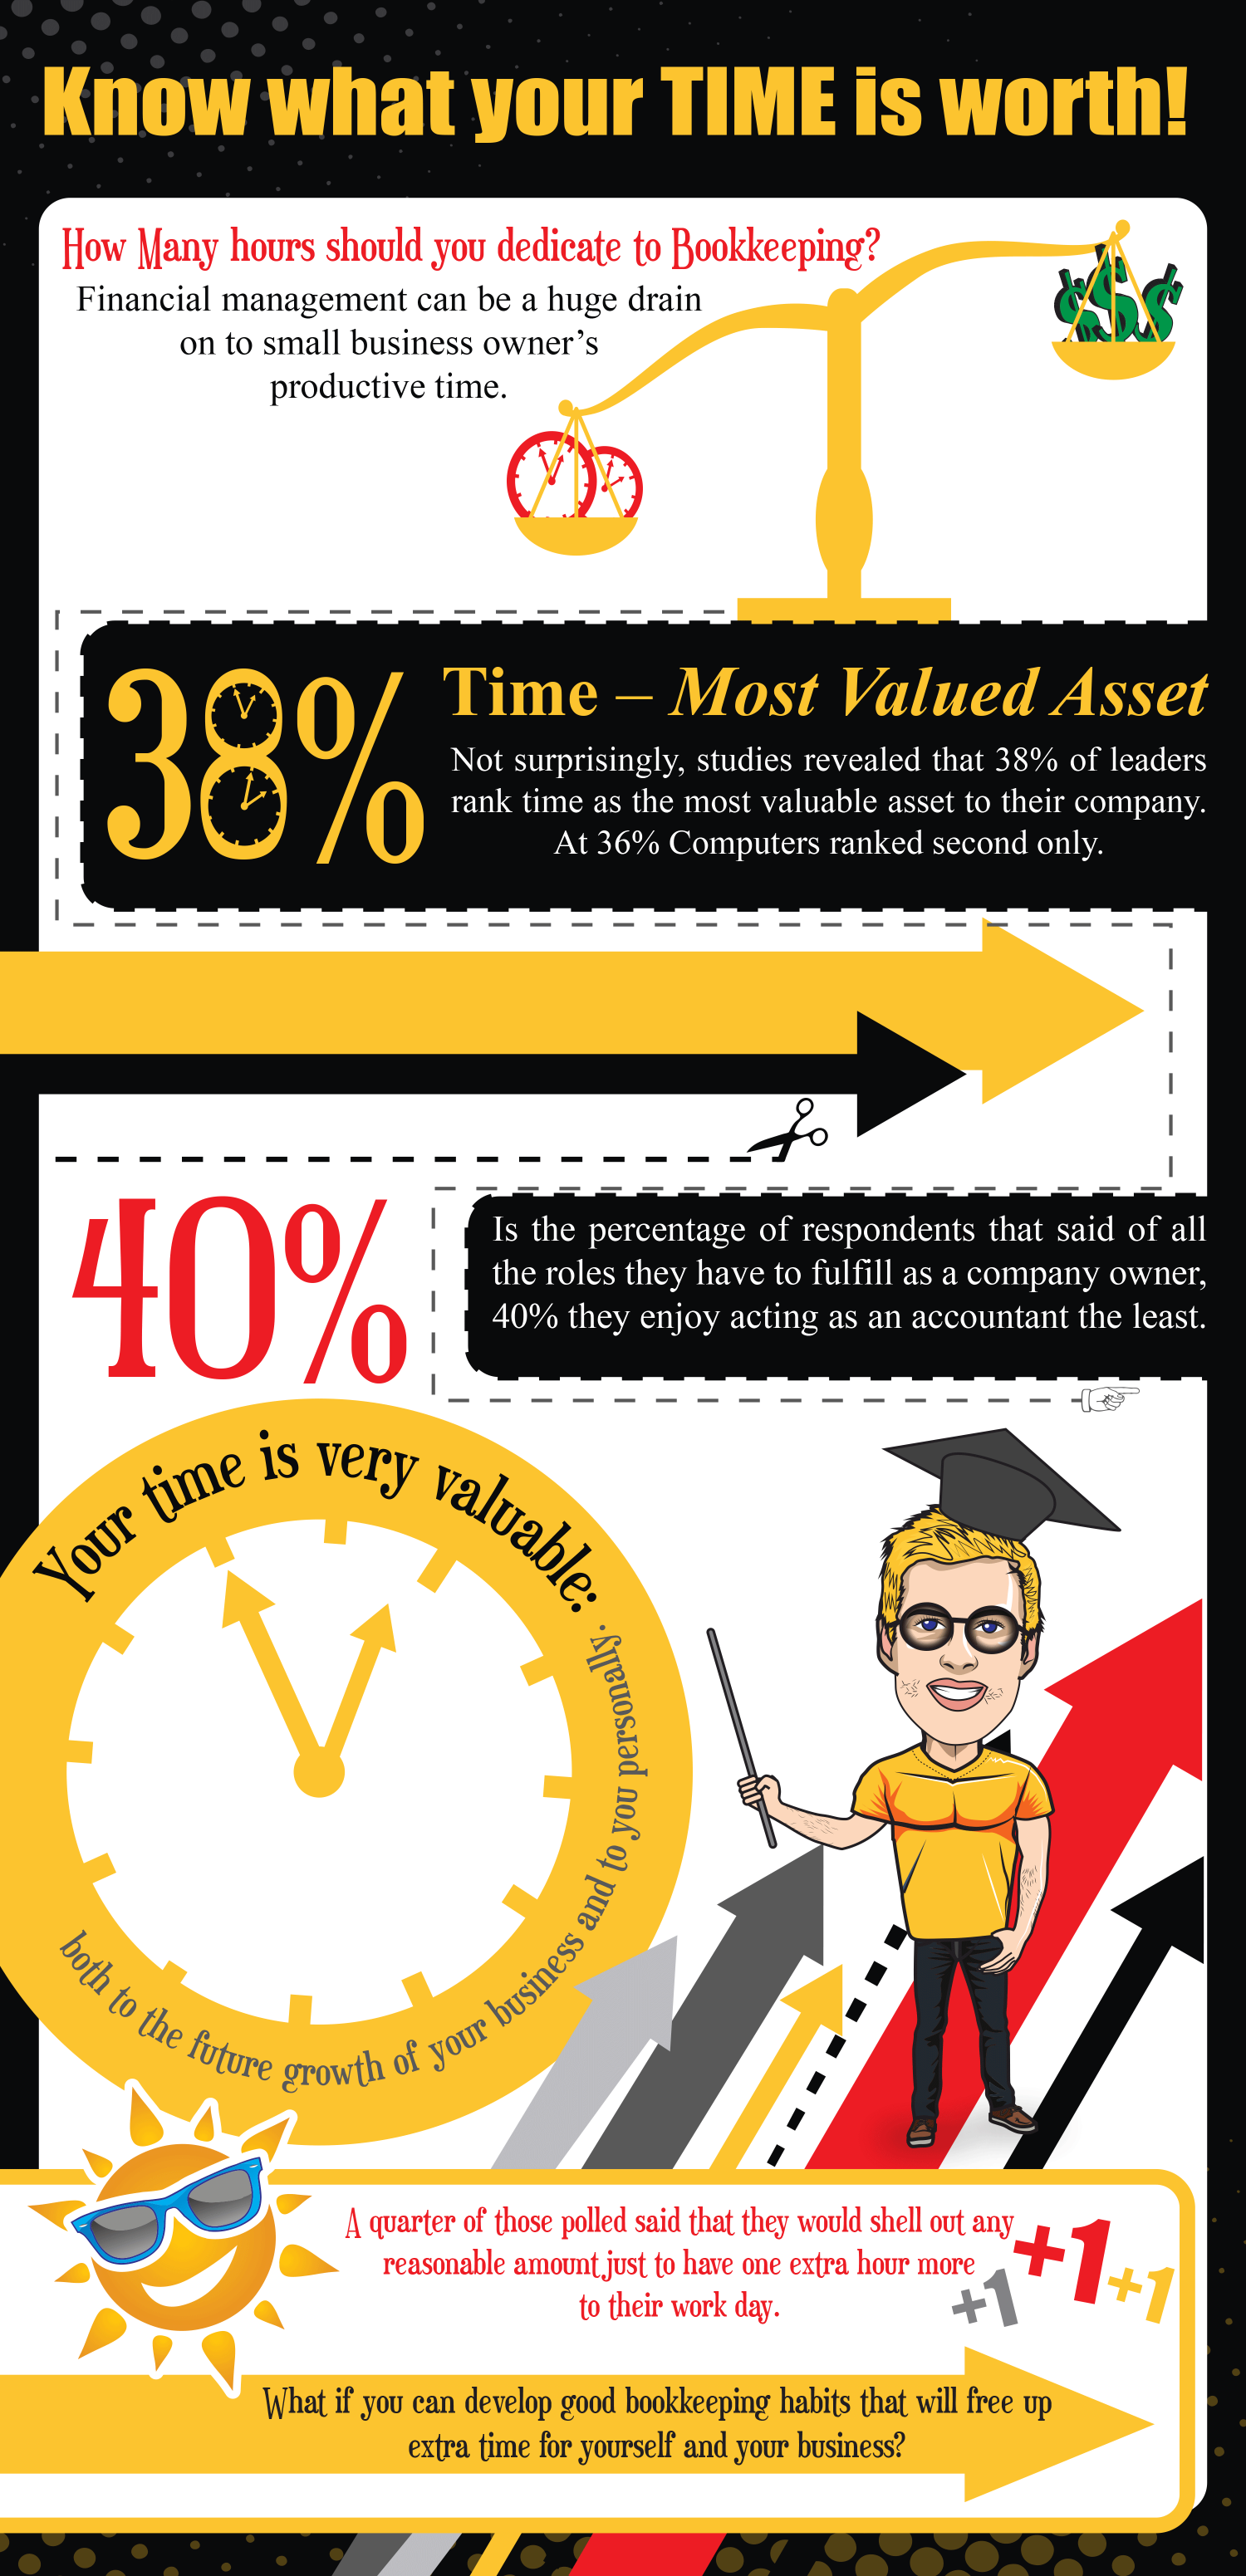 Know What Your Time Is Worth! Infographic